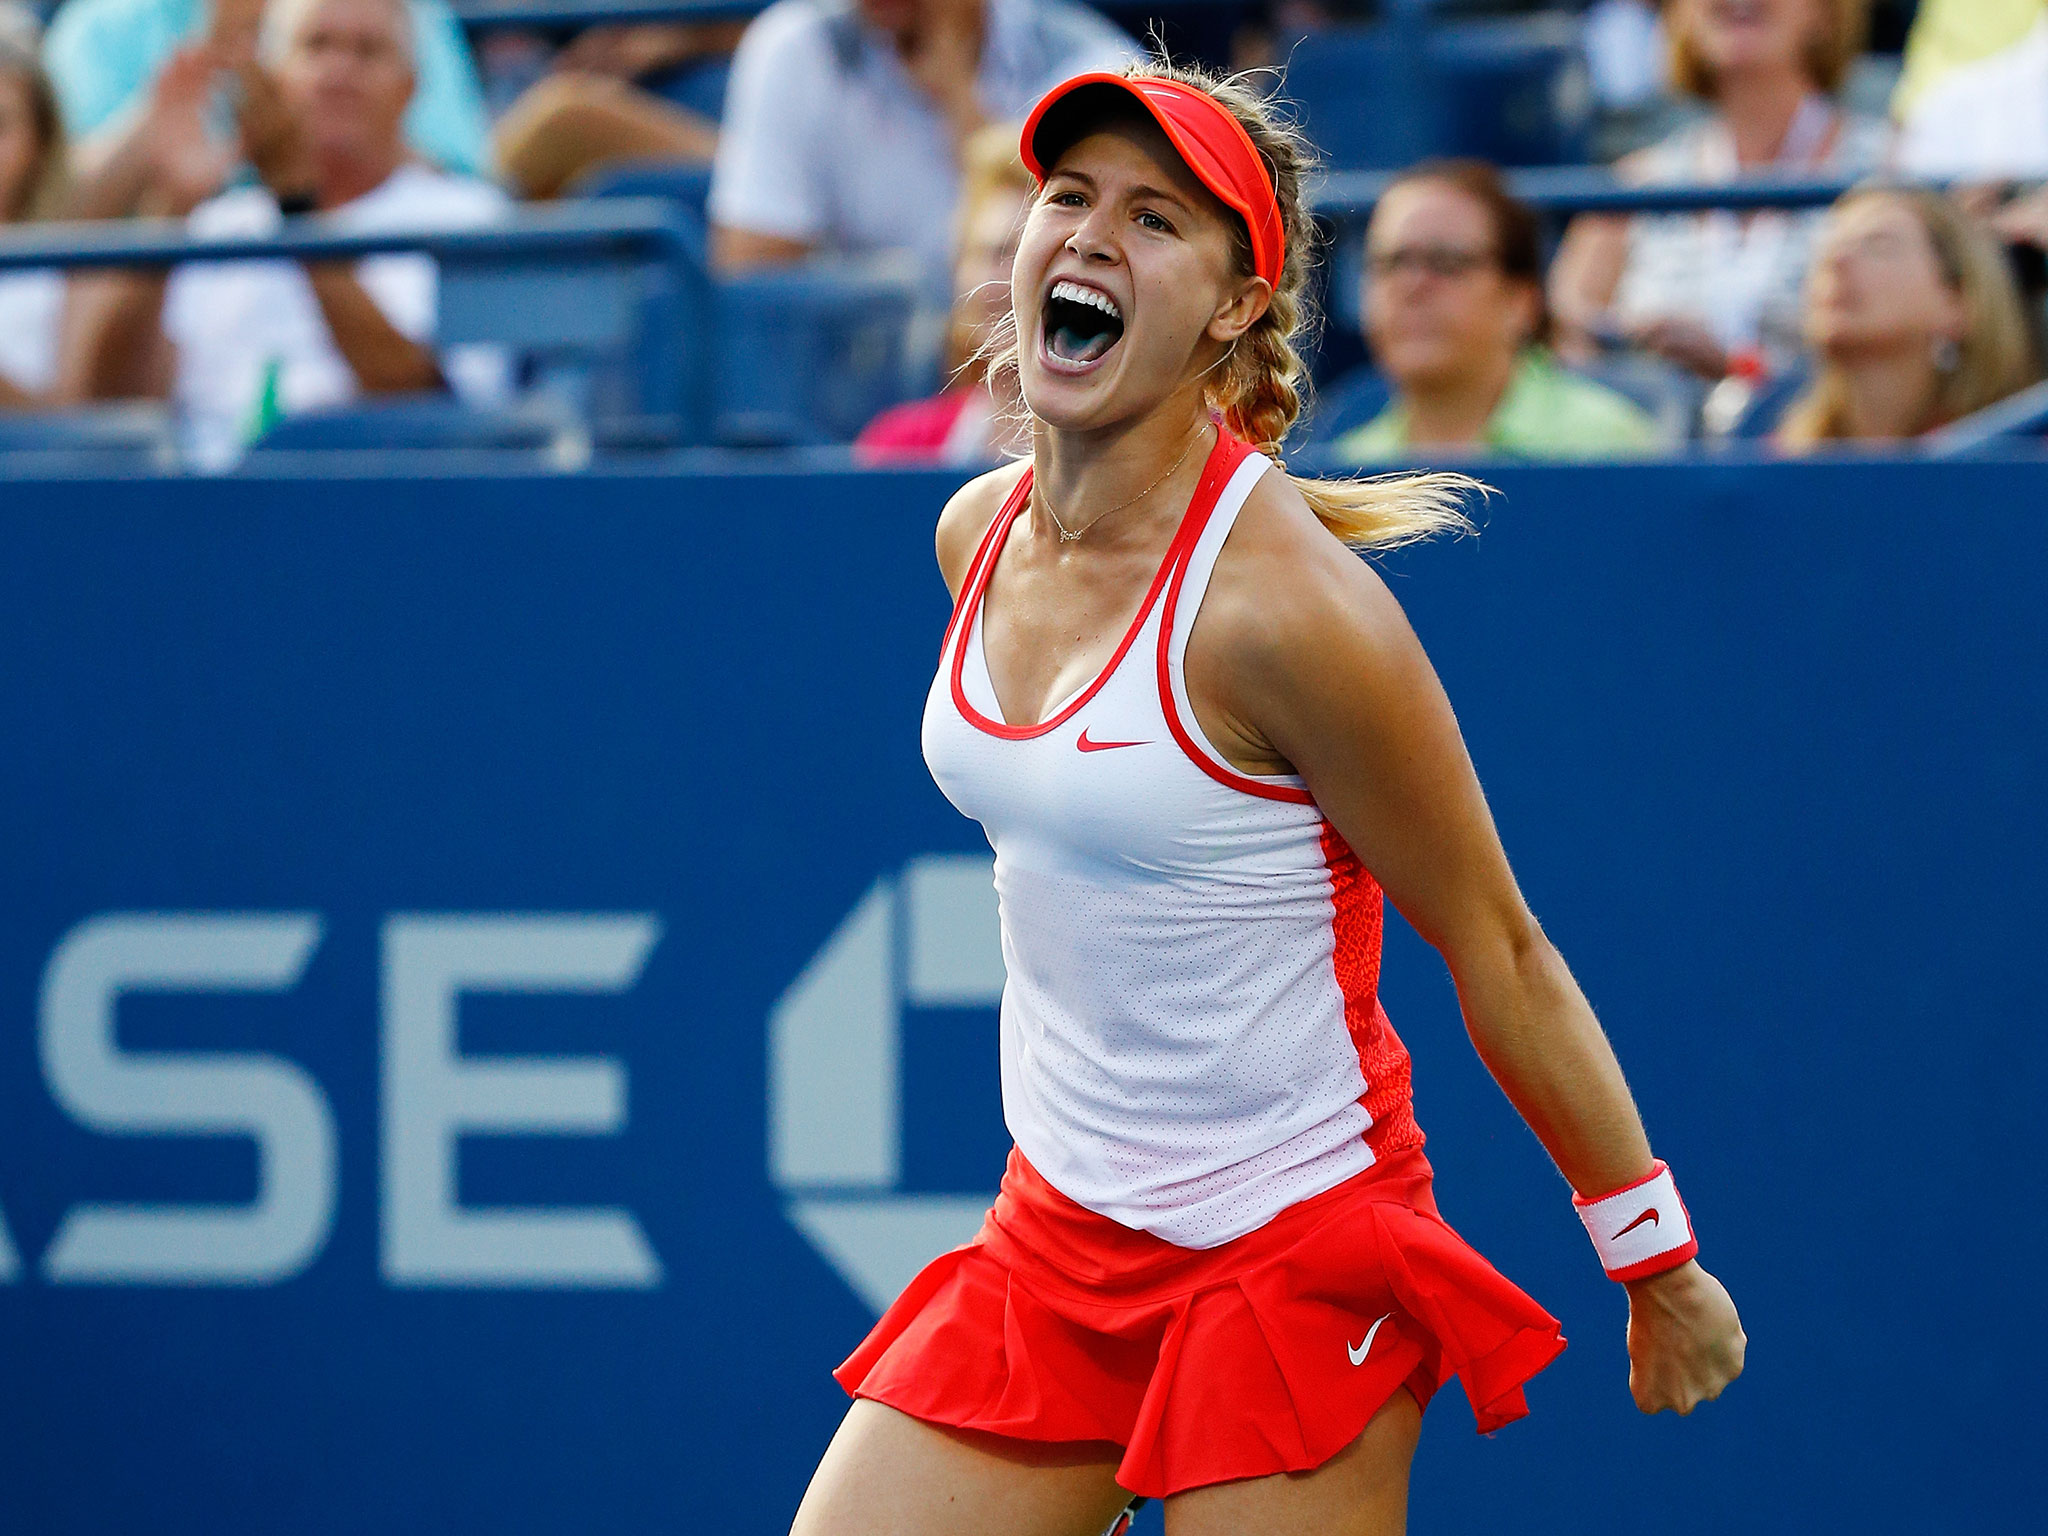 lovely eugenie bouchard stunning reaction for winnnig game pose mobile free desktop background images hd